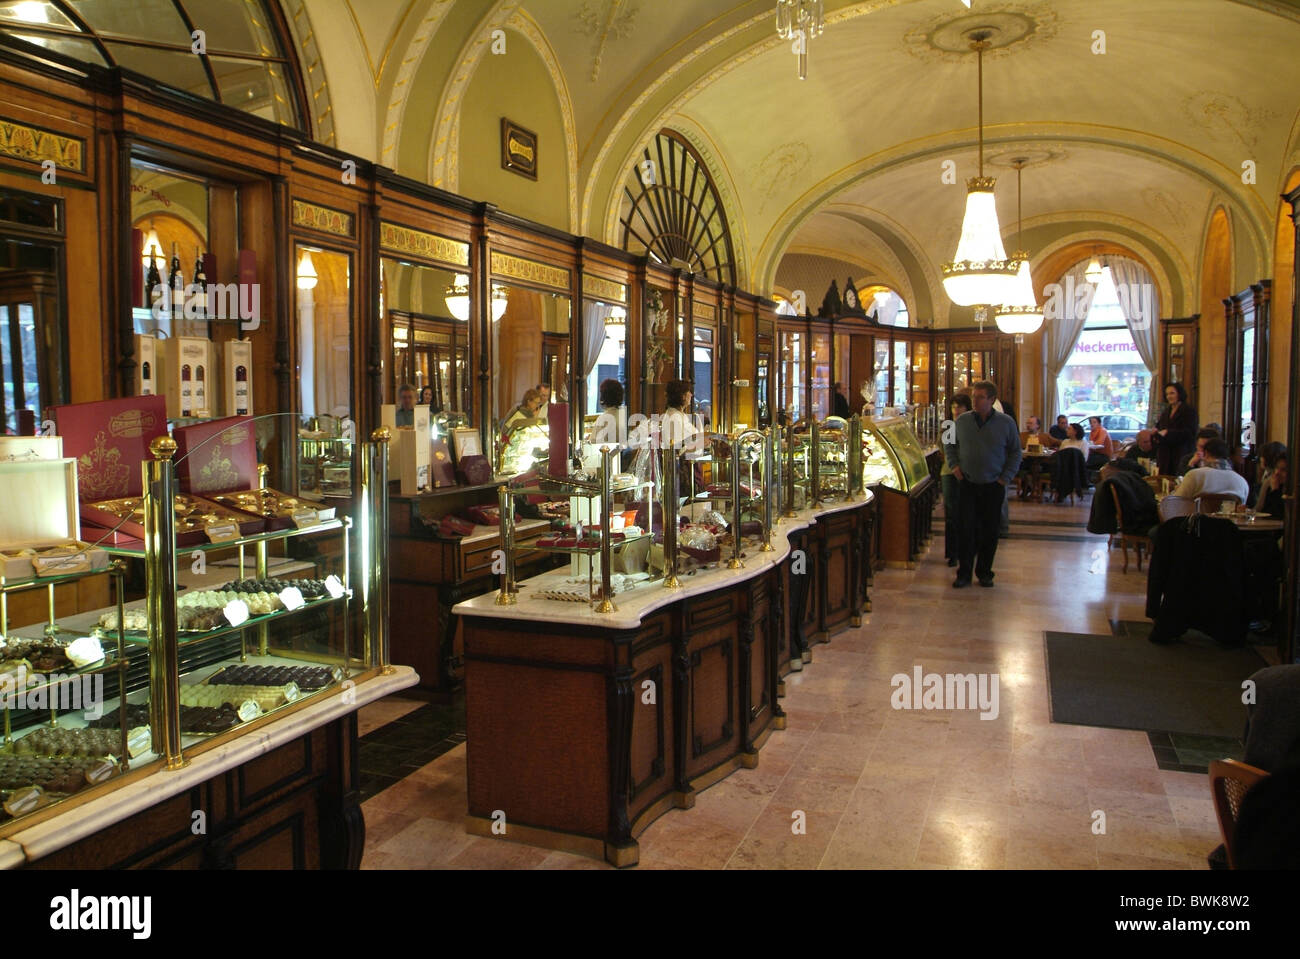 Hungary Budapest cafe Gerbeaud inside guests catering confectionery - Stock Image